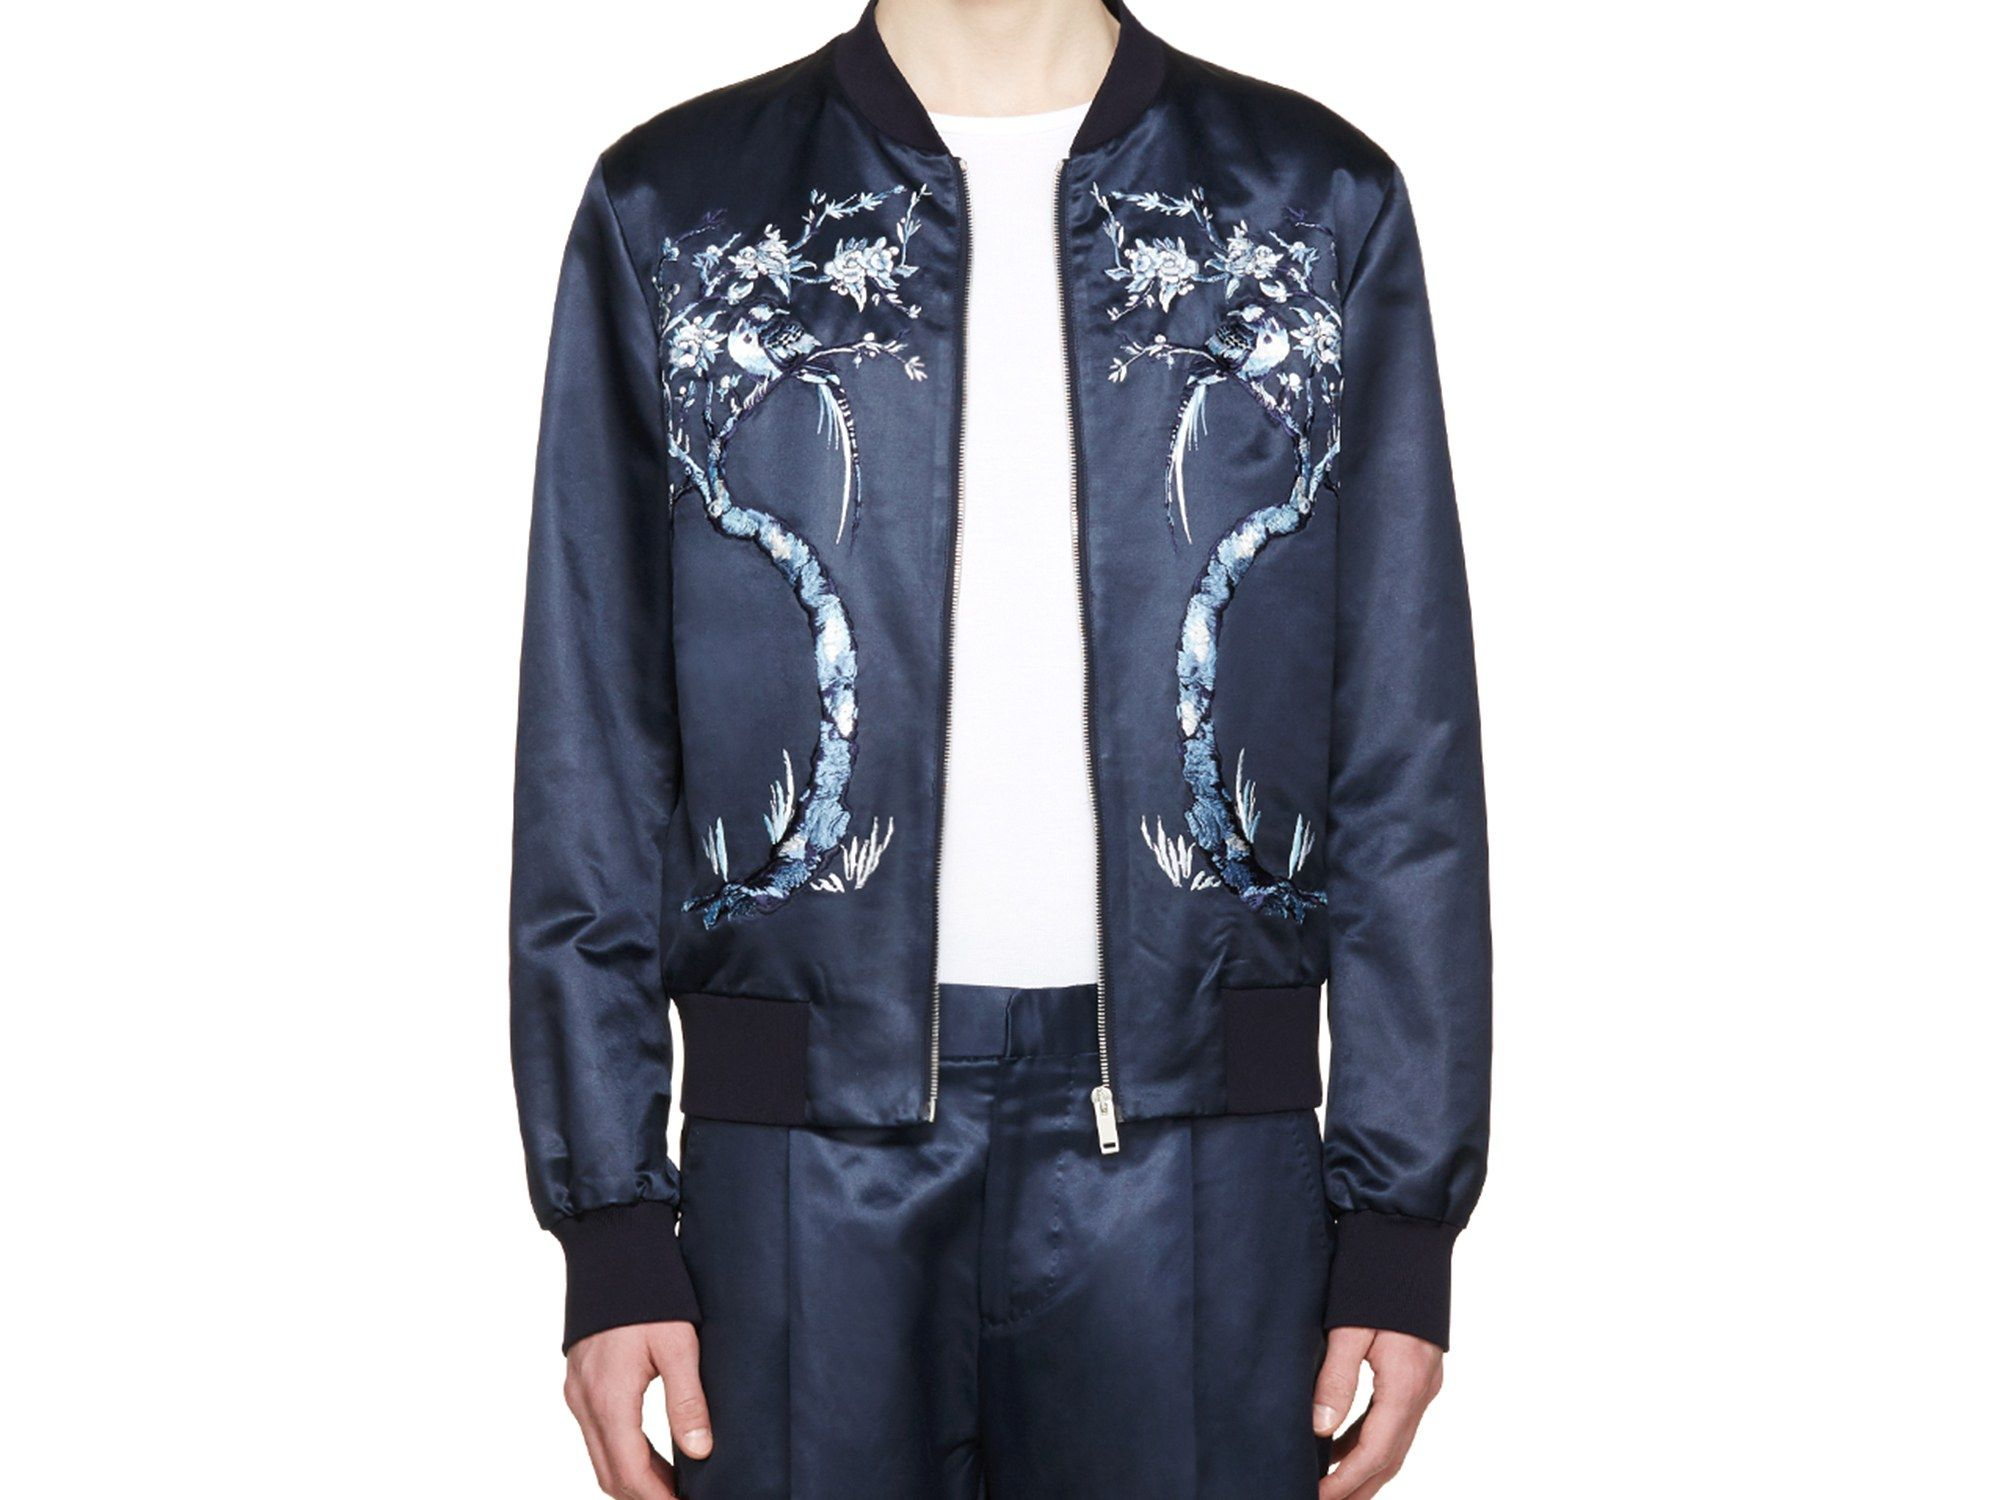 How To Reach Gosling Level Style With One Jacket Souvenir Jacket Jackets 2016 Jackets [ 1500 x 2000 Pixel ]